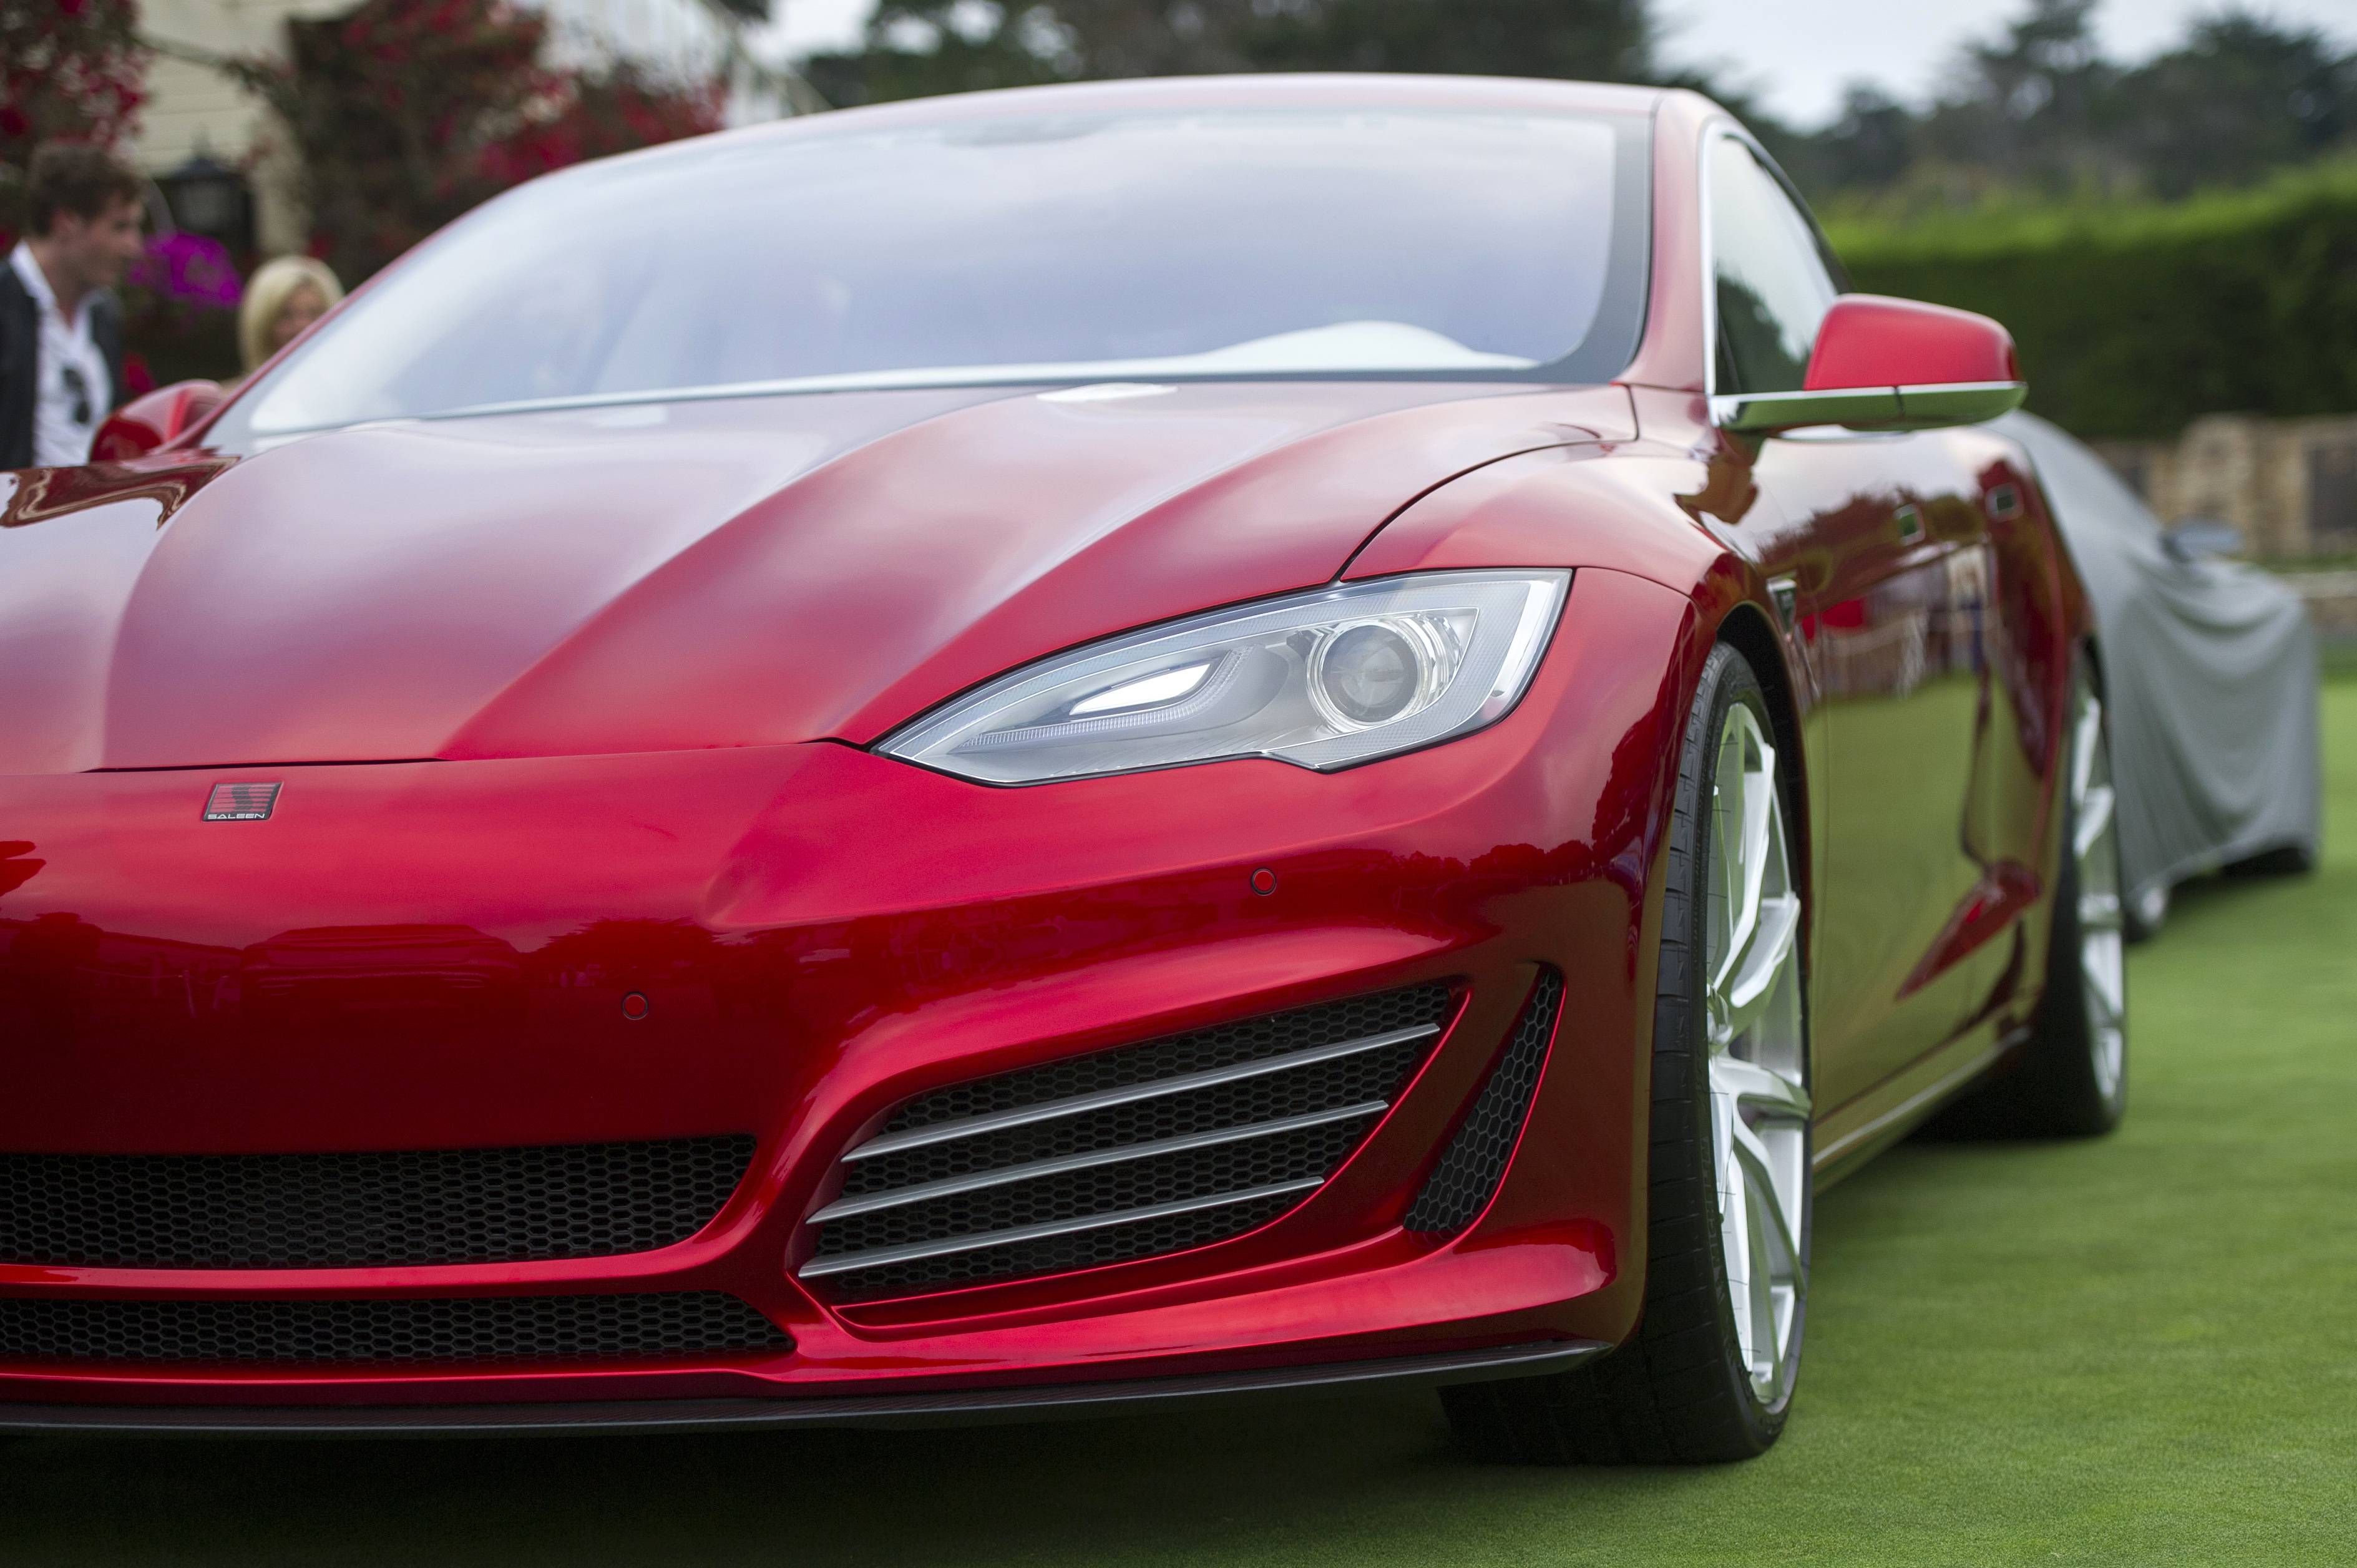 A Saleen Automotive Inc. Tesla Motors Inc. Foursixteen automobile is displayed during the 2014 Pebble Beach Concours d'Elegance in Pebble Beach, California.